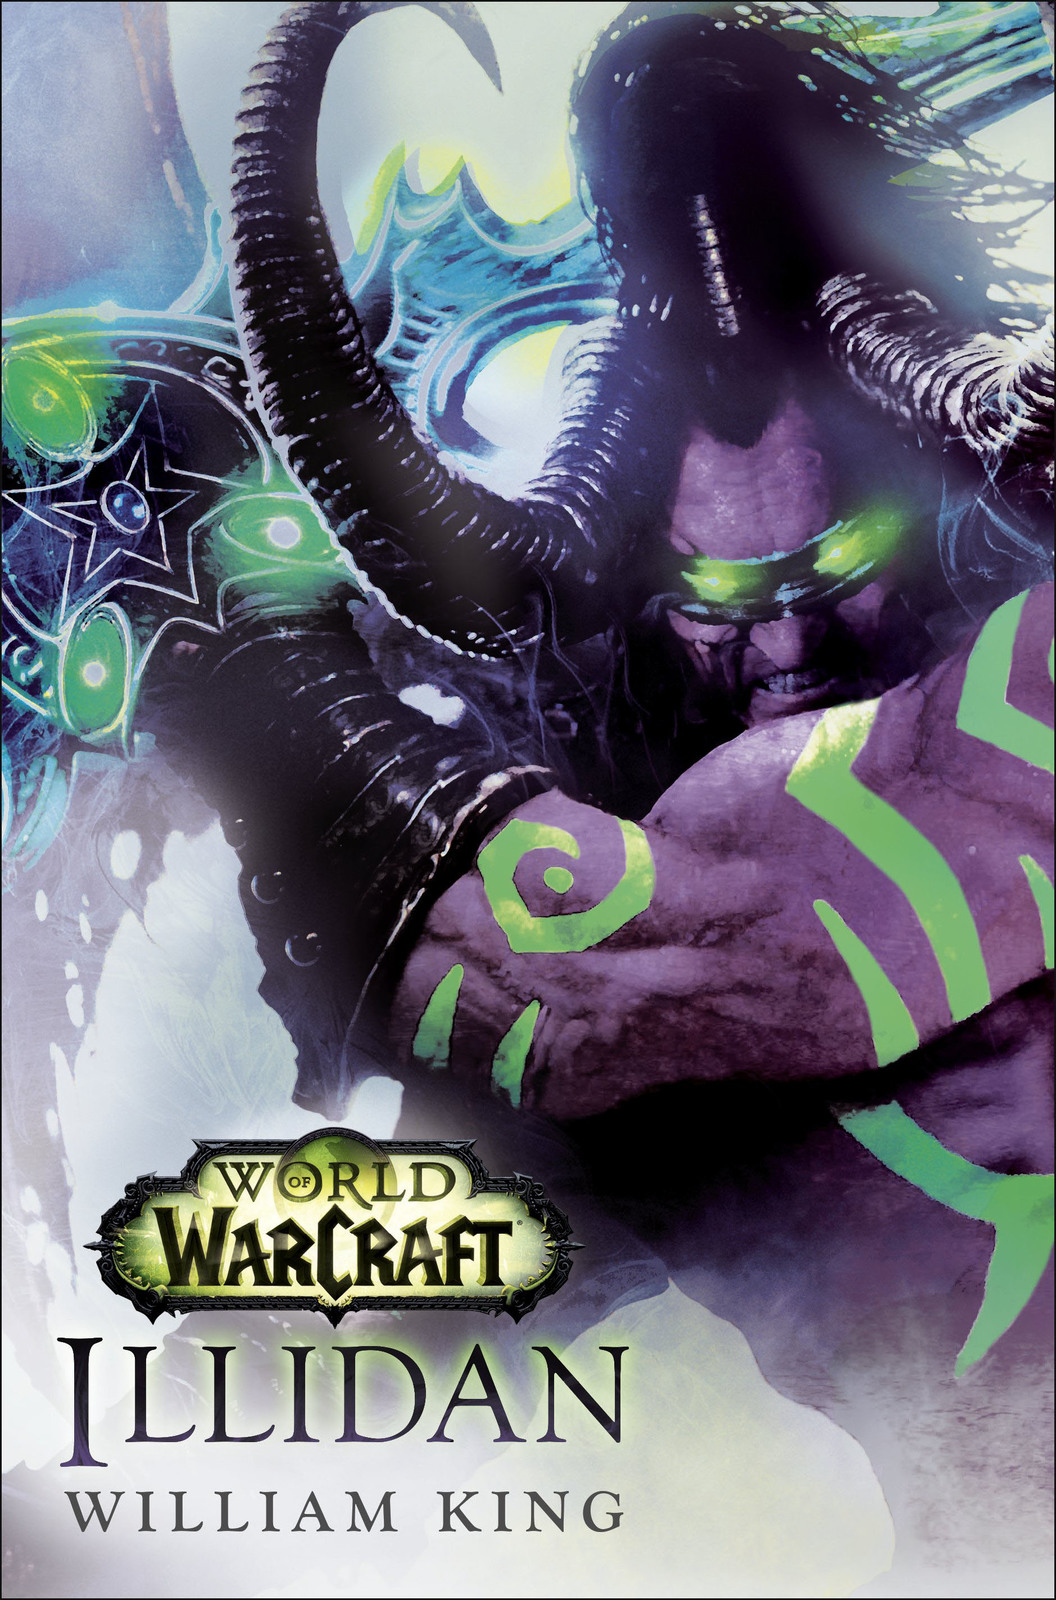 World of Warcraft by William King image